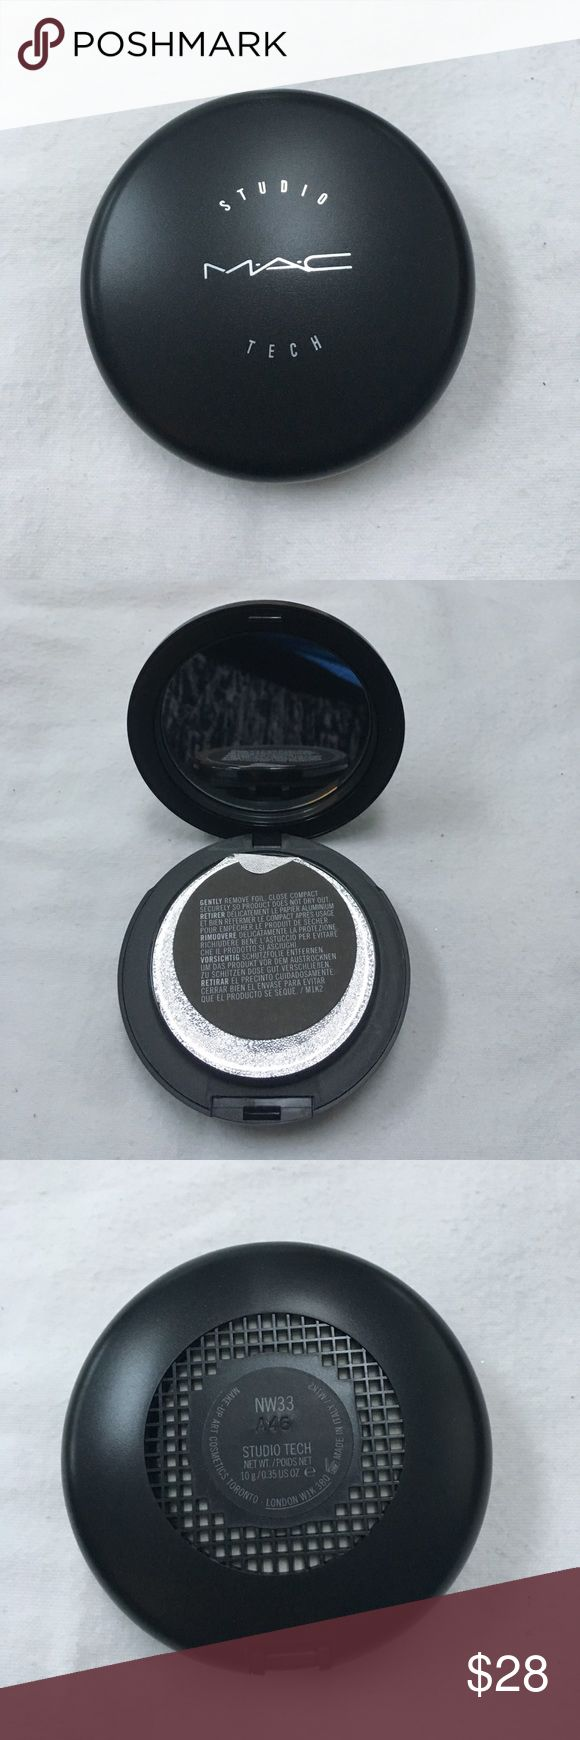 MAC NW33 studio tech foundation New, never used, packaging still sealed as pictured, last photo is nw33 shade from mac's website MAC Cosmetics Makeup Foundation